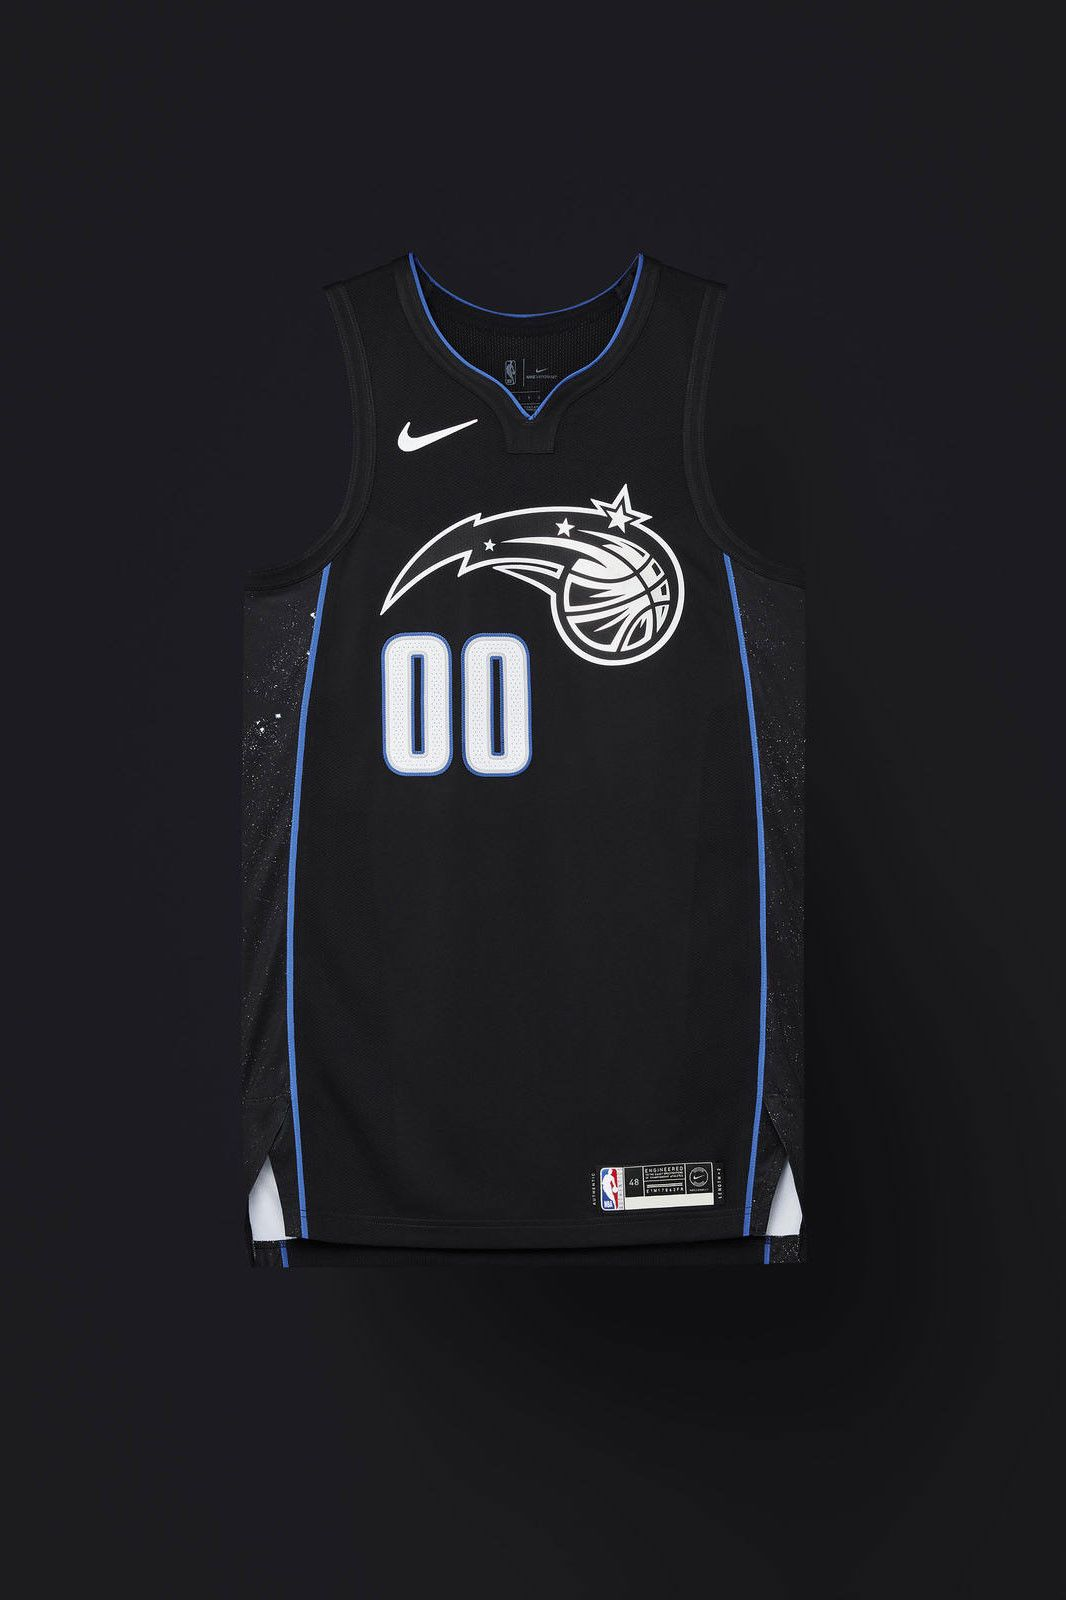 the best attitude 4d1e2 86c3d Nike Reveals 2018-2019 NBA City Edition Uniforms | SPORTZ ...